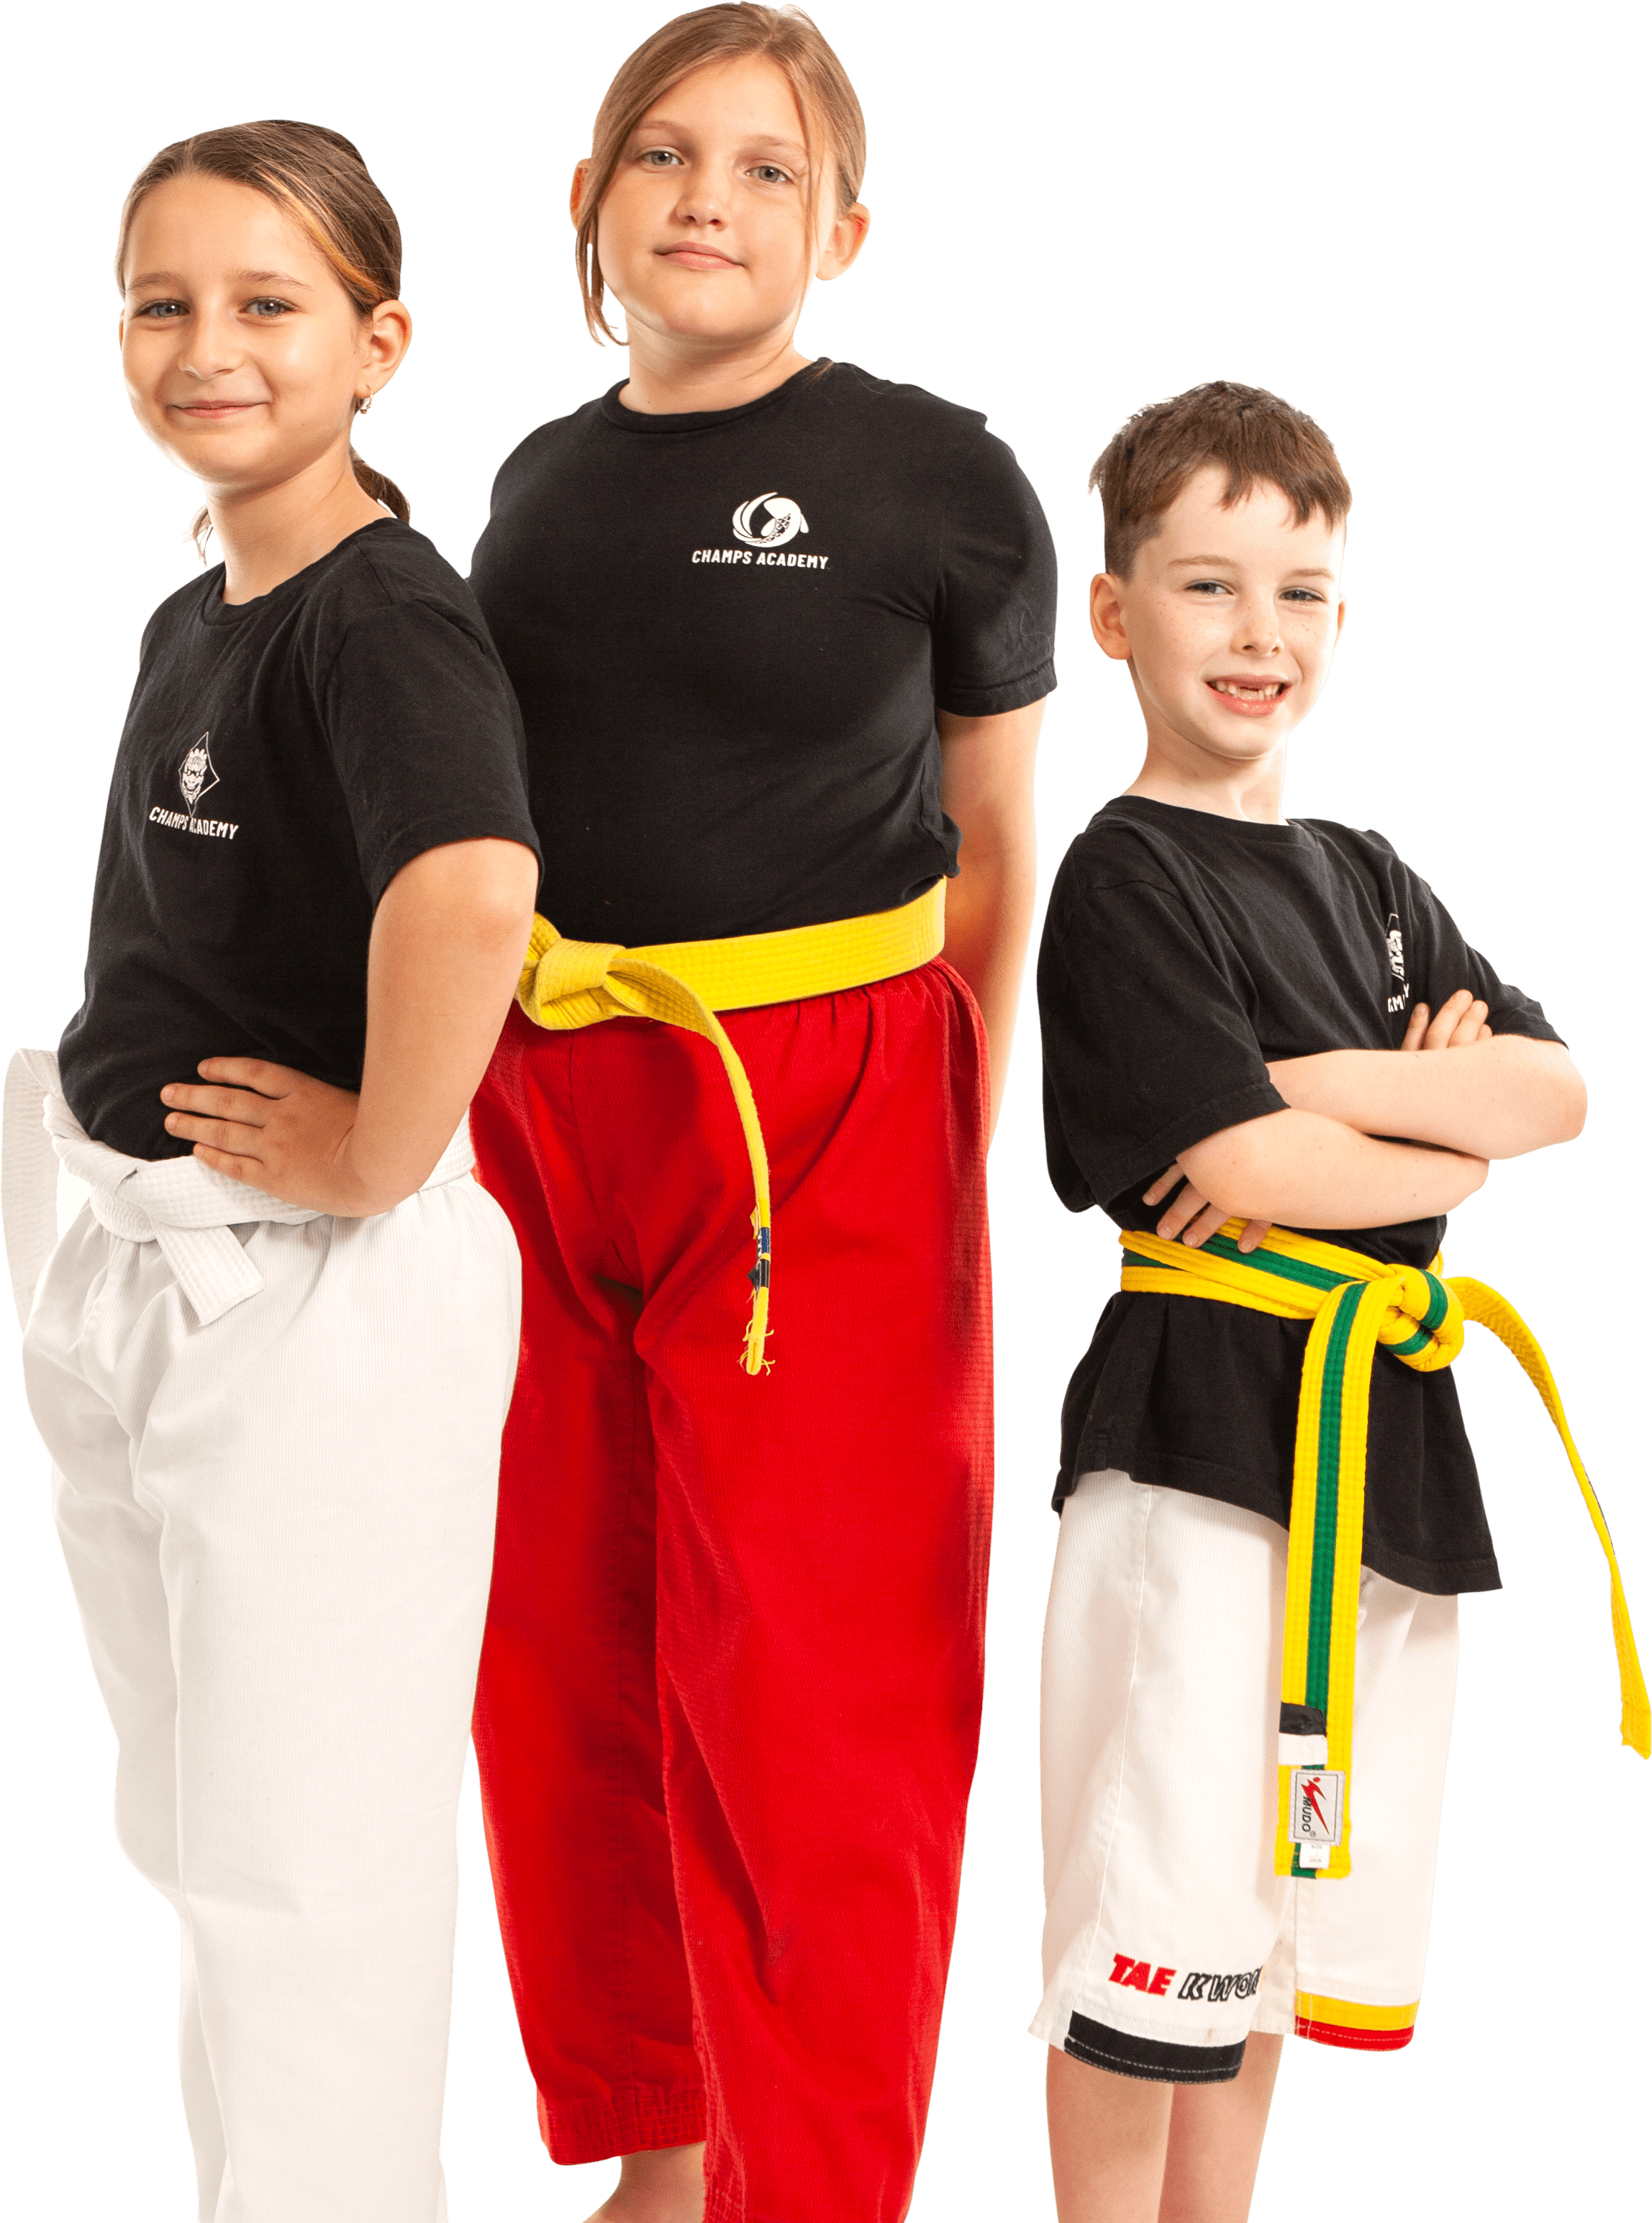 3 kids smiling in their martial arts uniforms